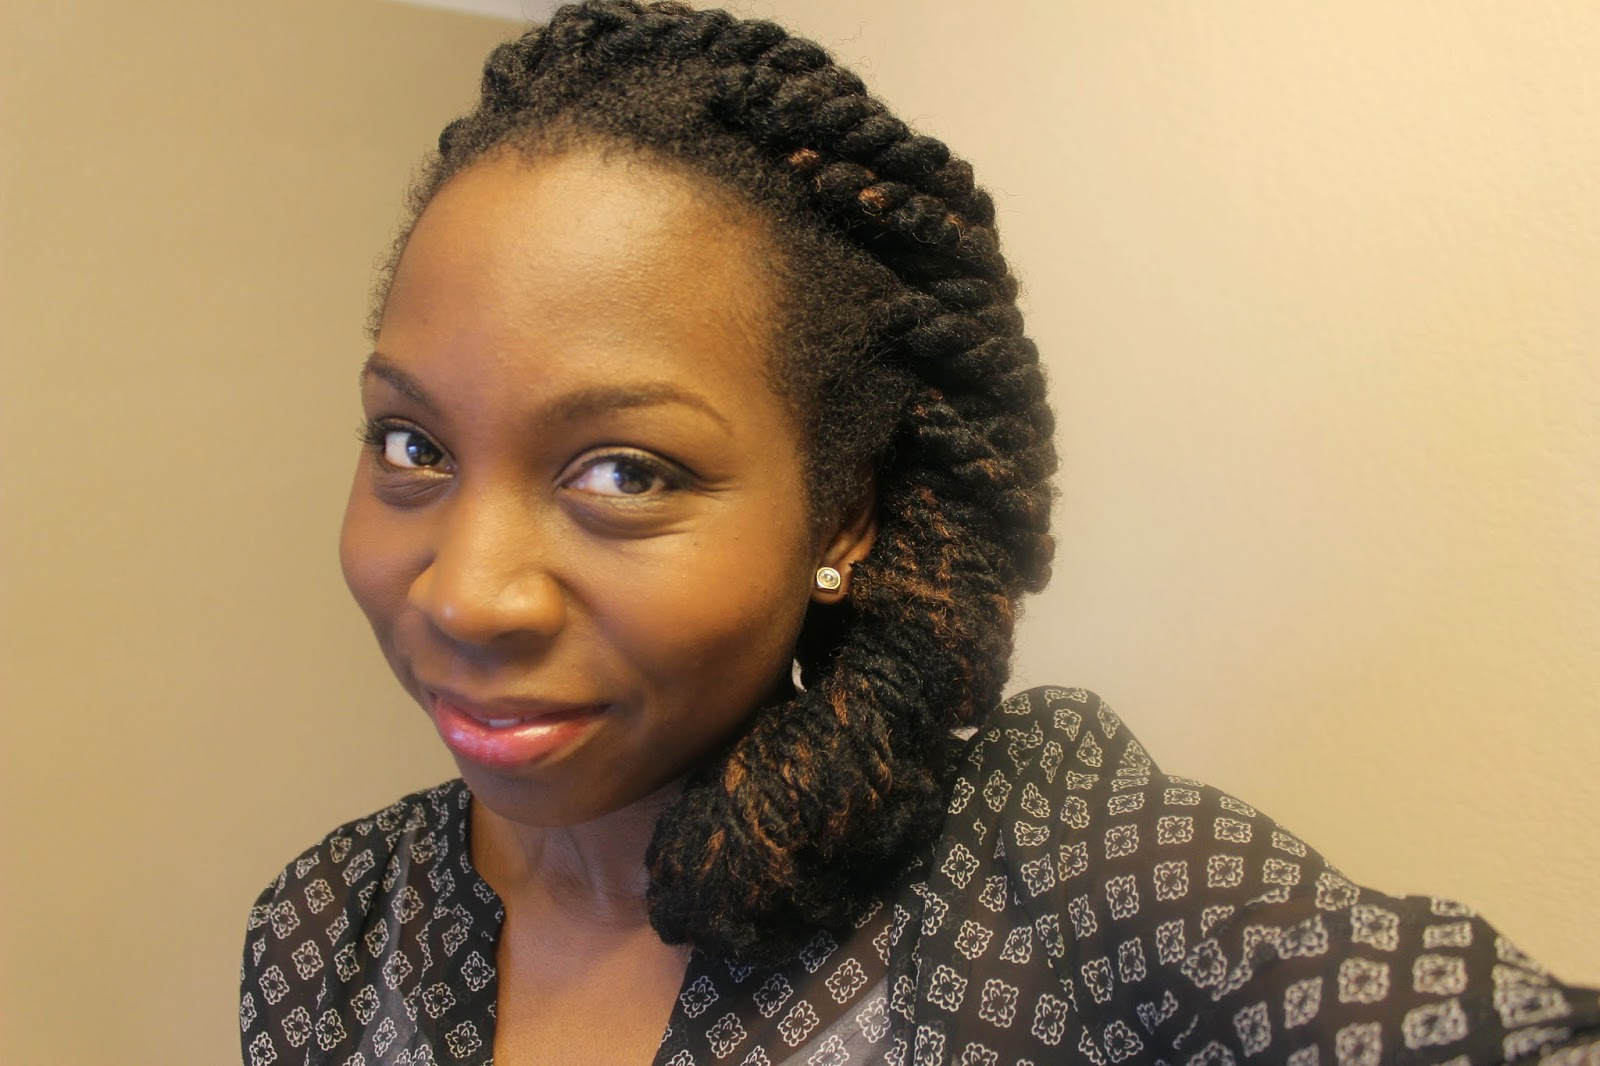 Caring For Your Natural Hair After Long Term Protective Styling